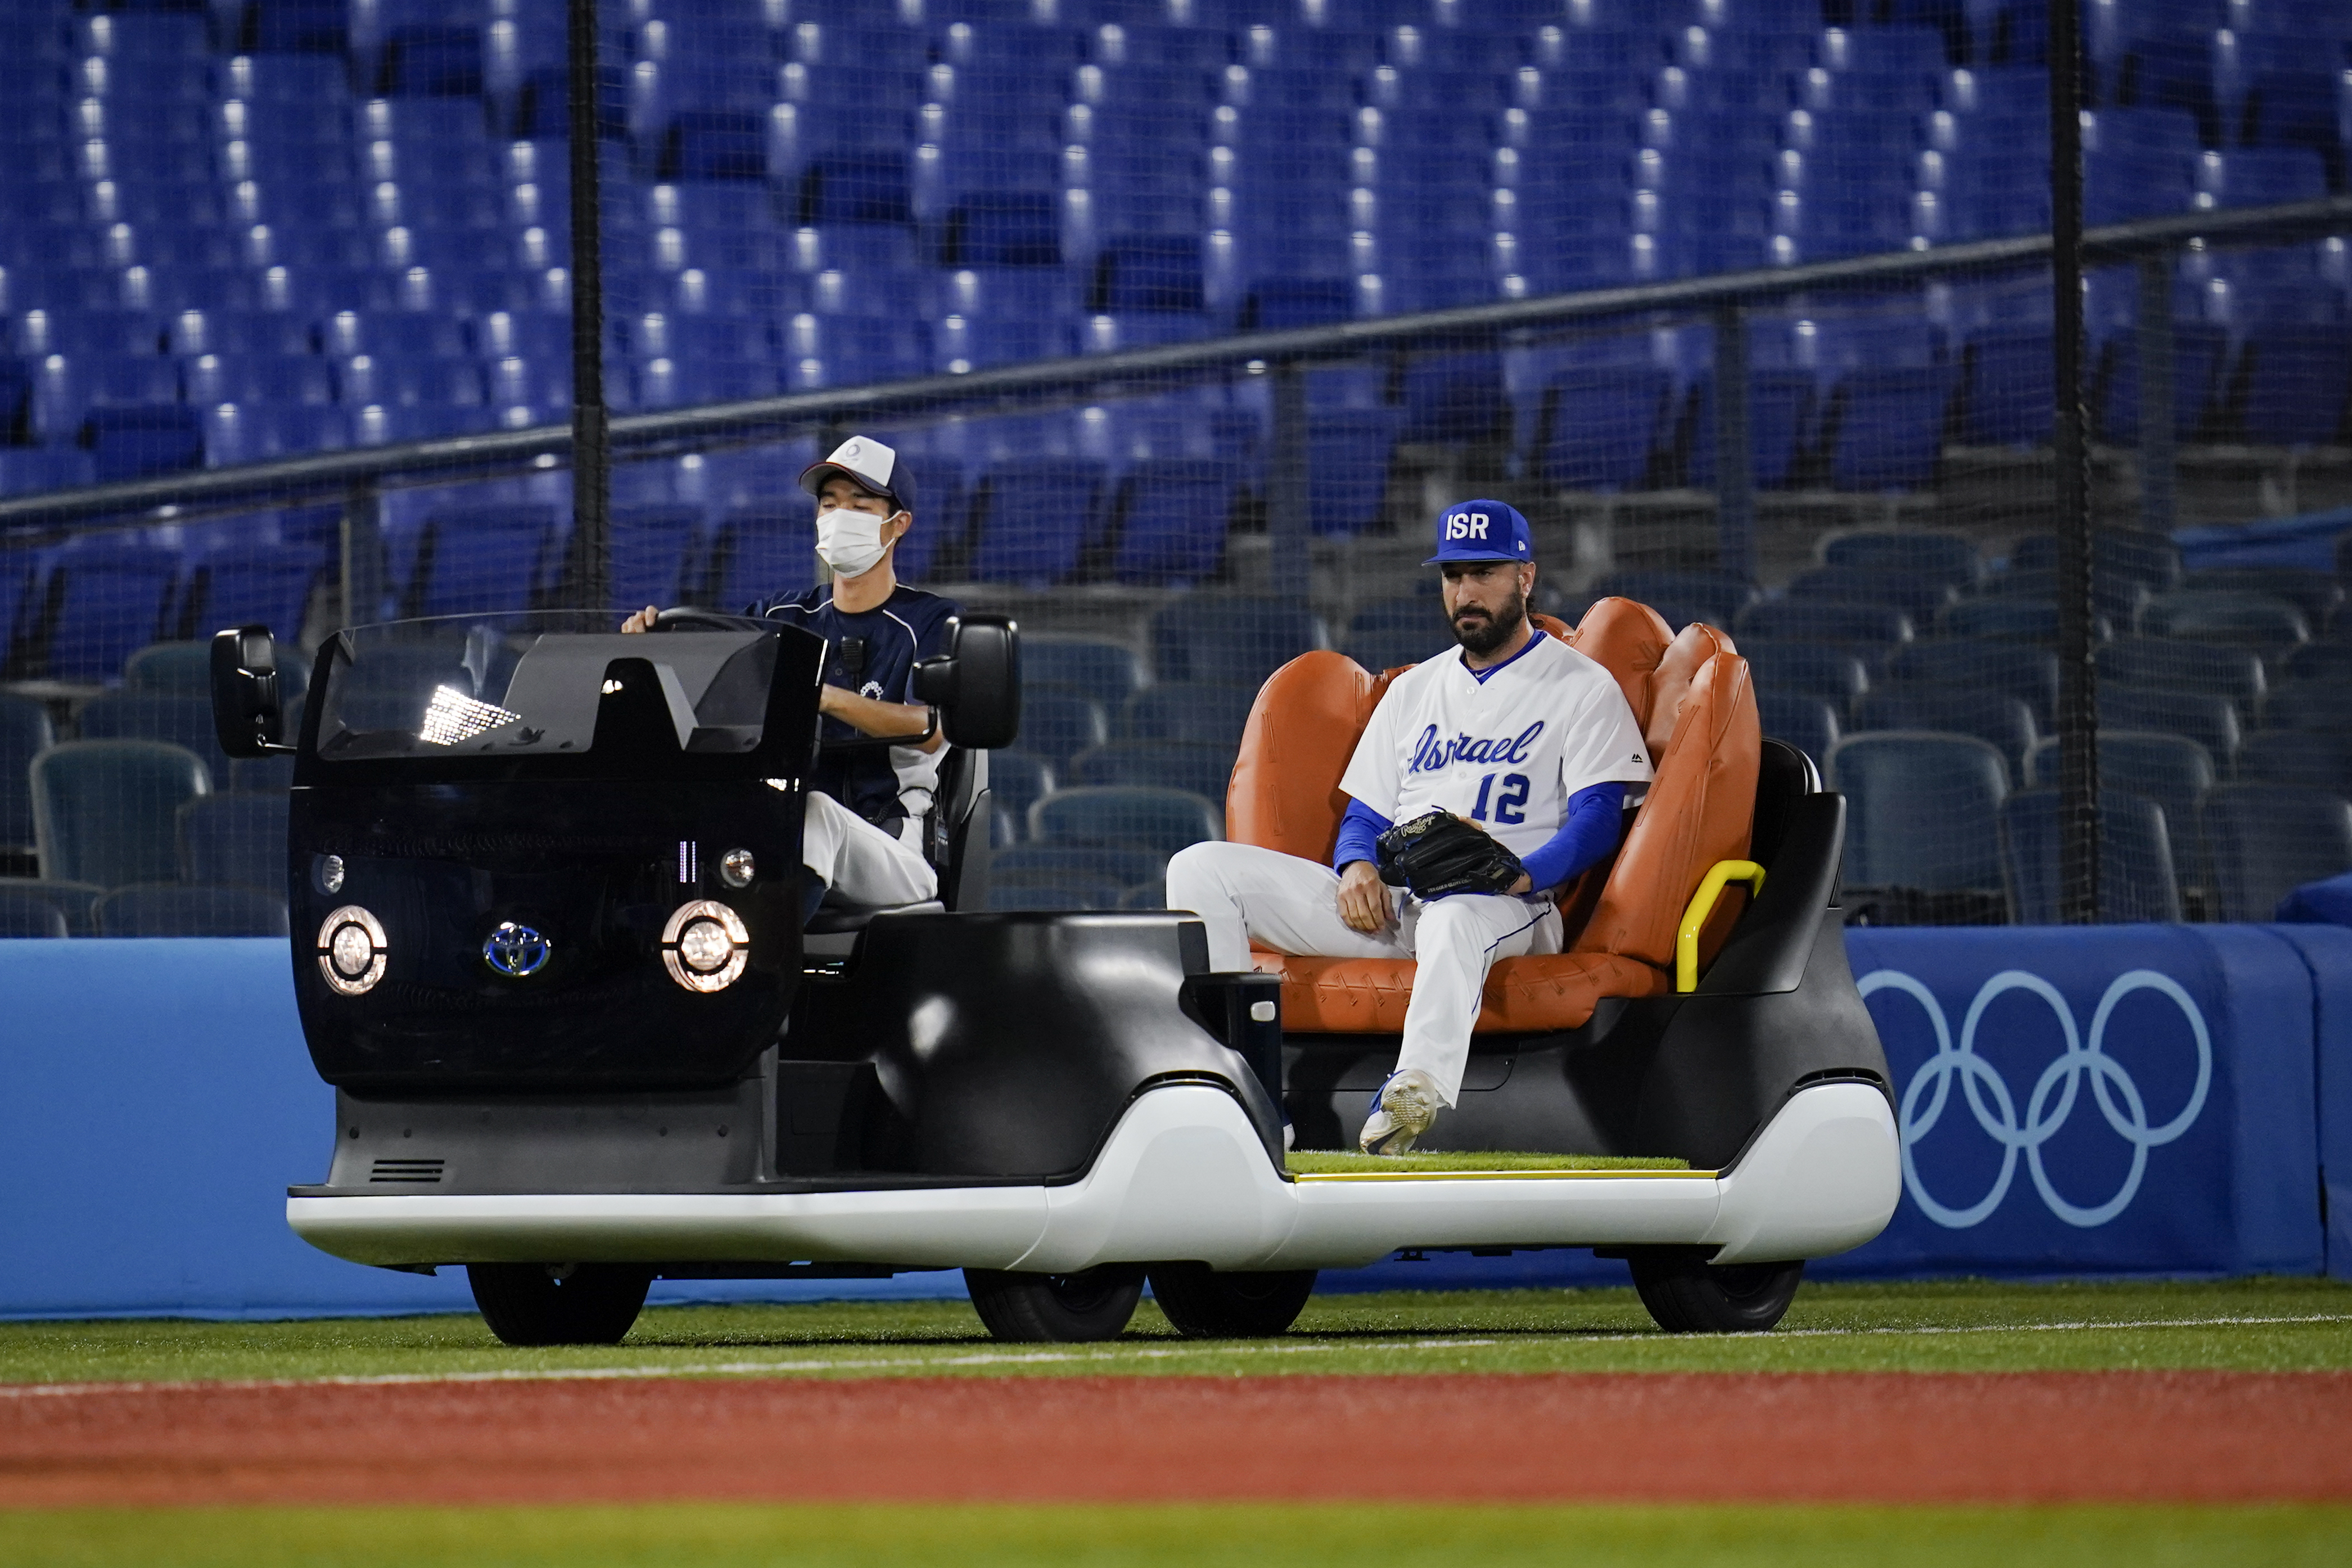 Israel's Shlomo Lipetz comes in to pitch on the bullpen cart.